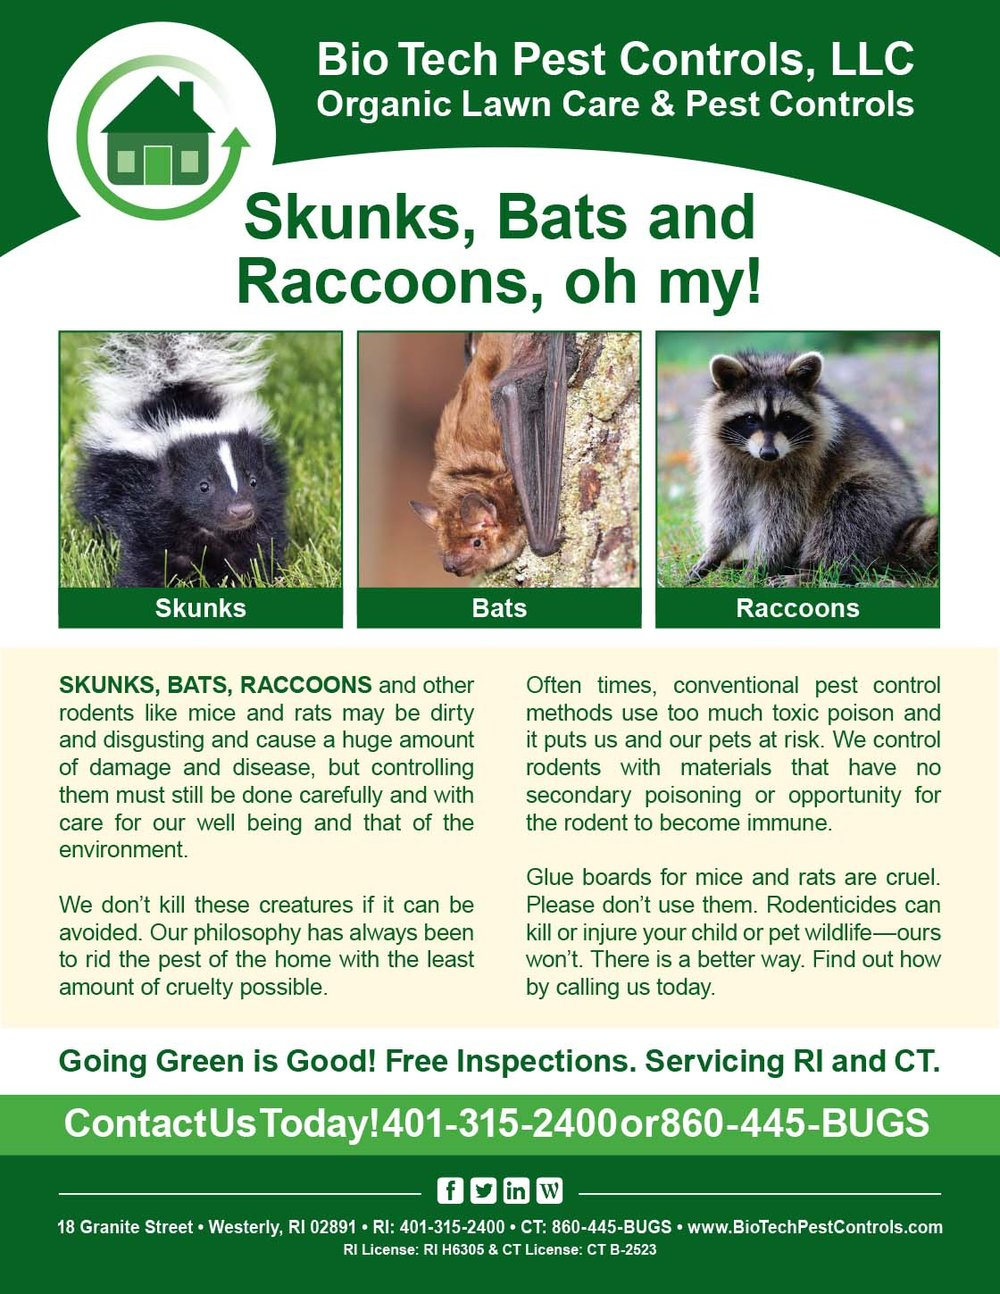 Skunks_Bats_Raccoons_Flyer.jpg